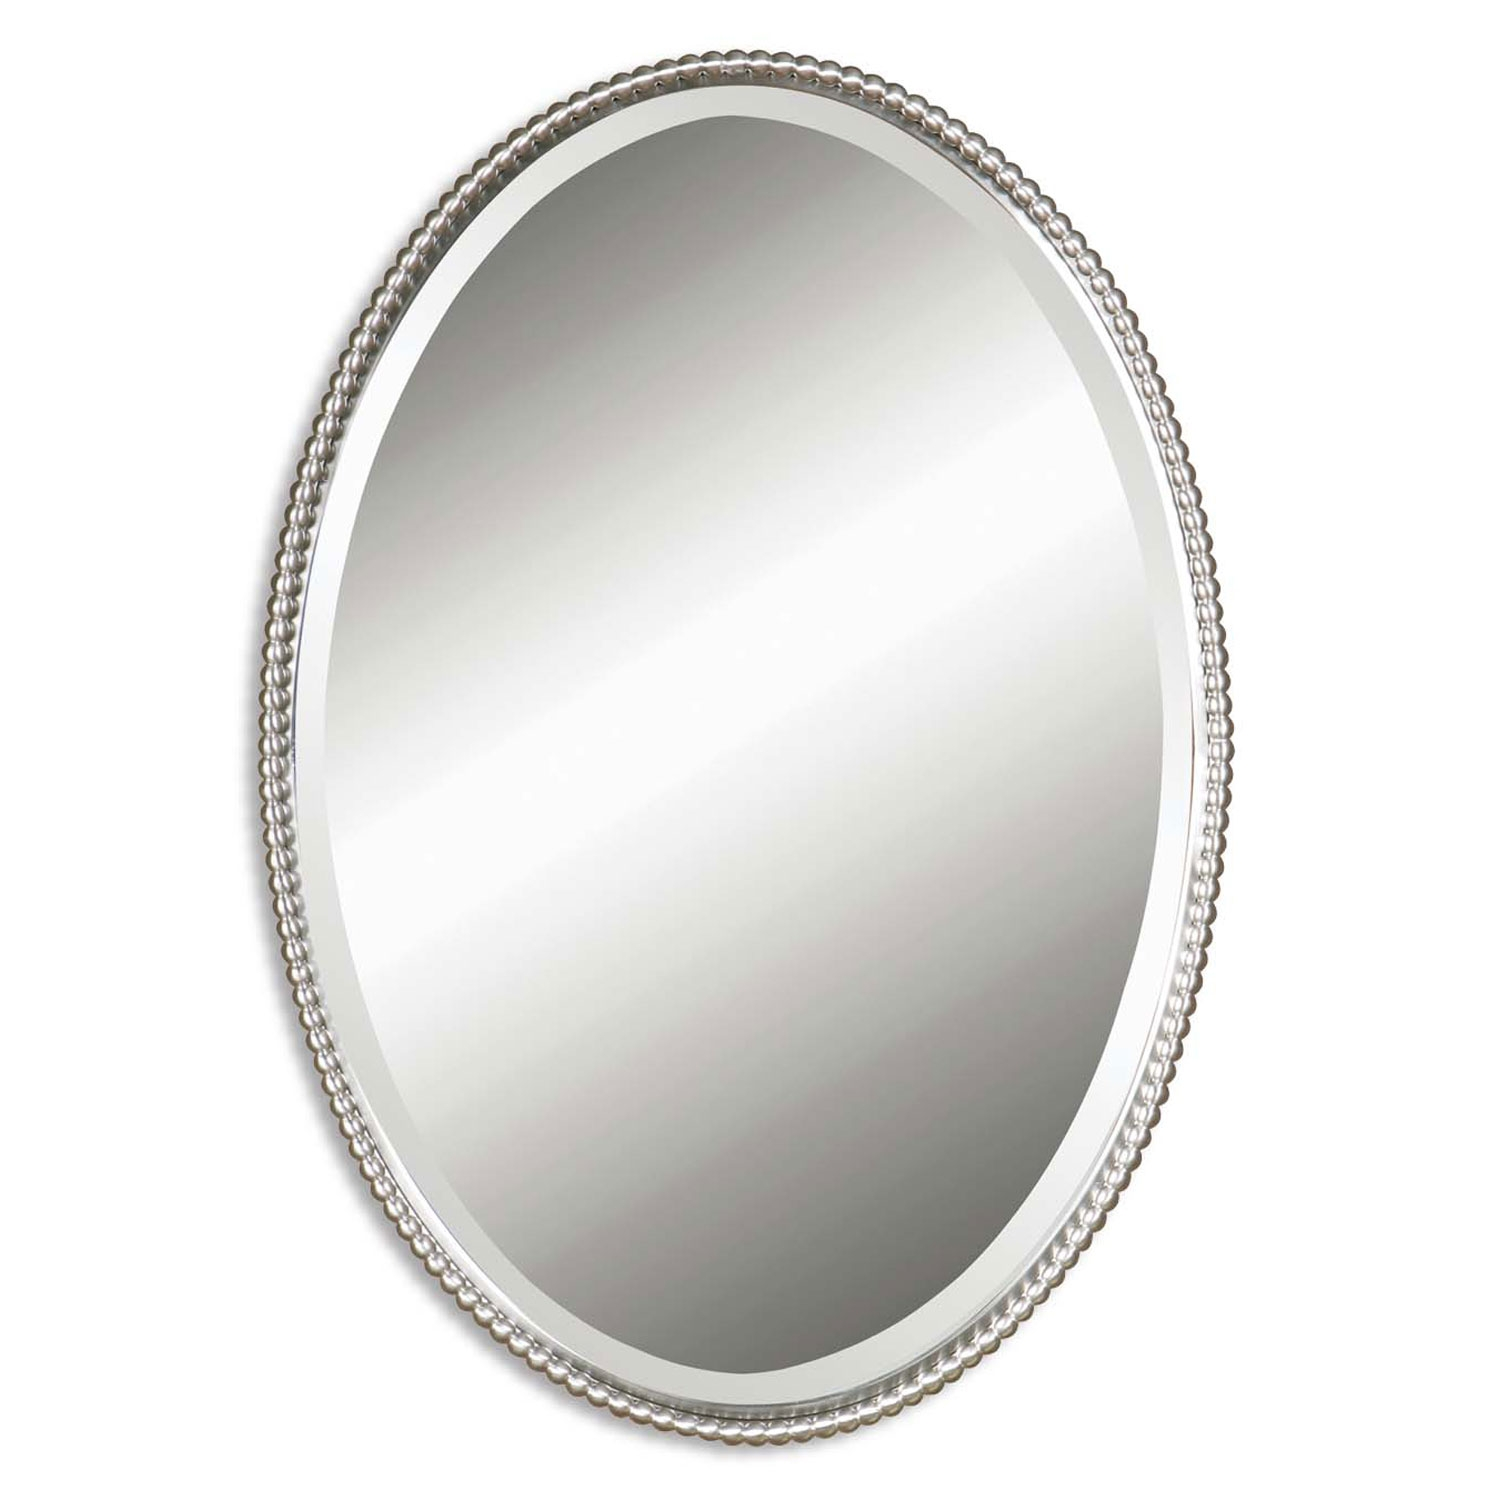 Oval Wall Mirrors 270 Kitchen Bathroom Frameless Vanity Options Throughout Long Oval Mirror (Image 14 of 15)